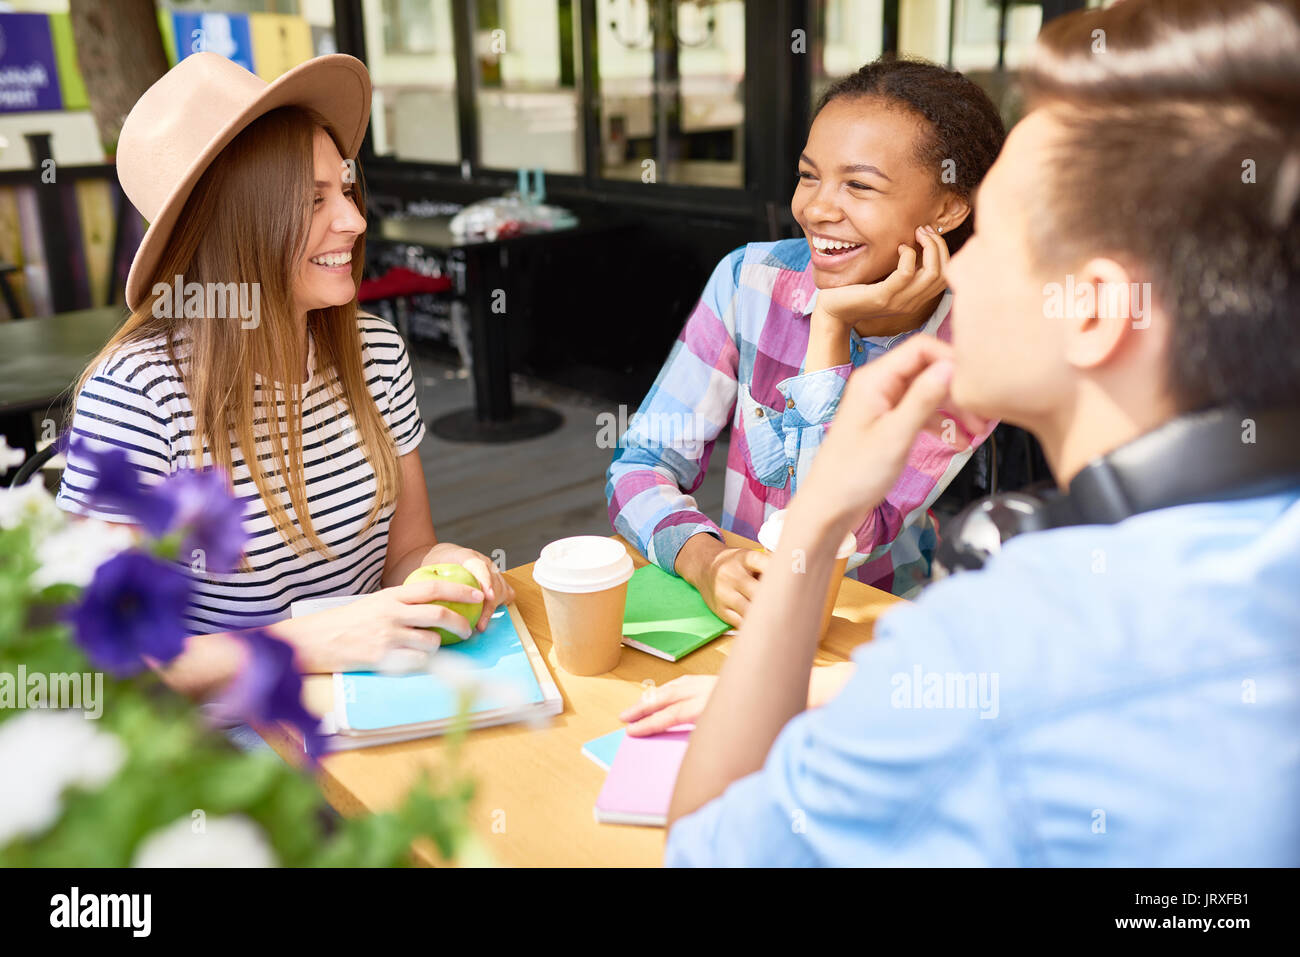 Young People Studying in Cafe - Stock Image